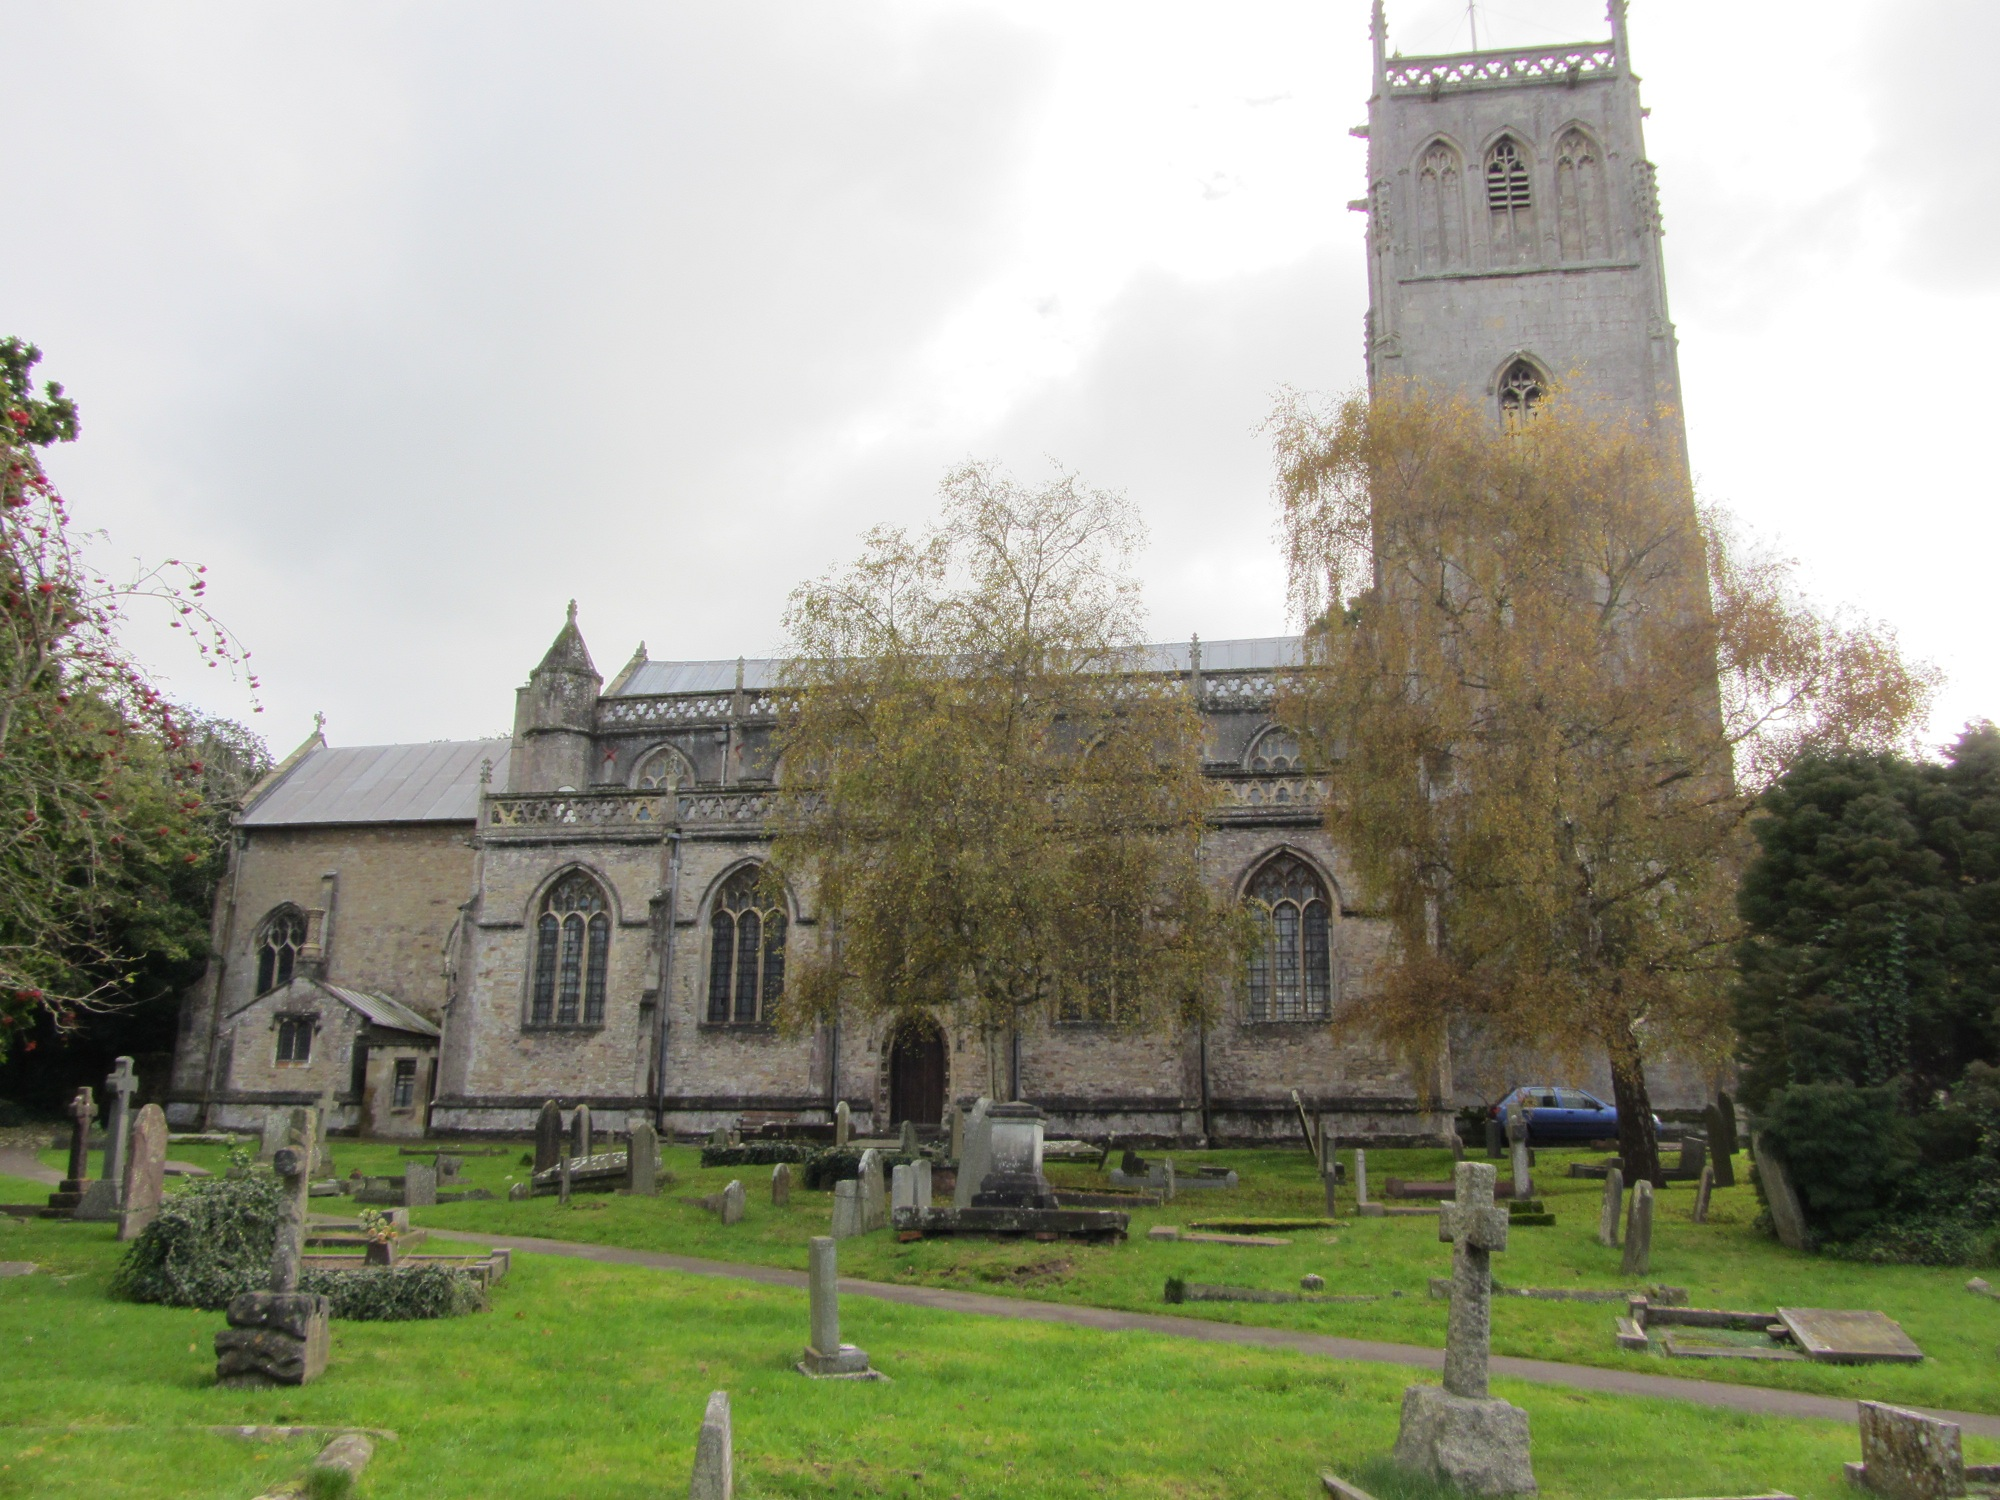 St. Andrew's (Banwell)